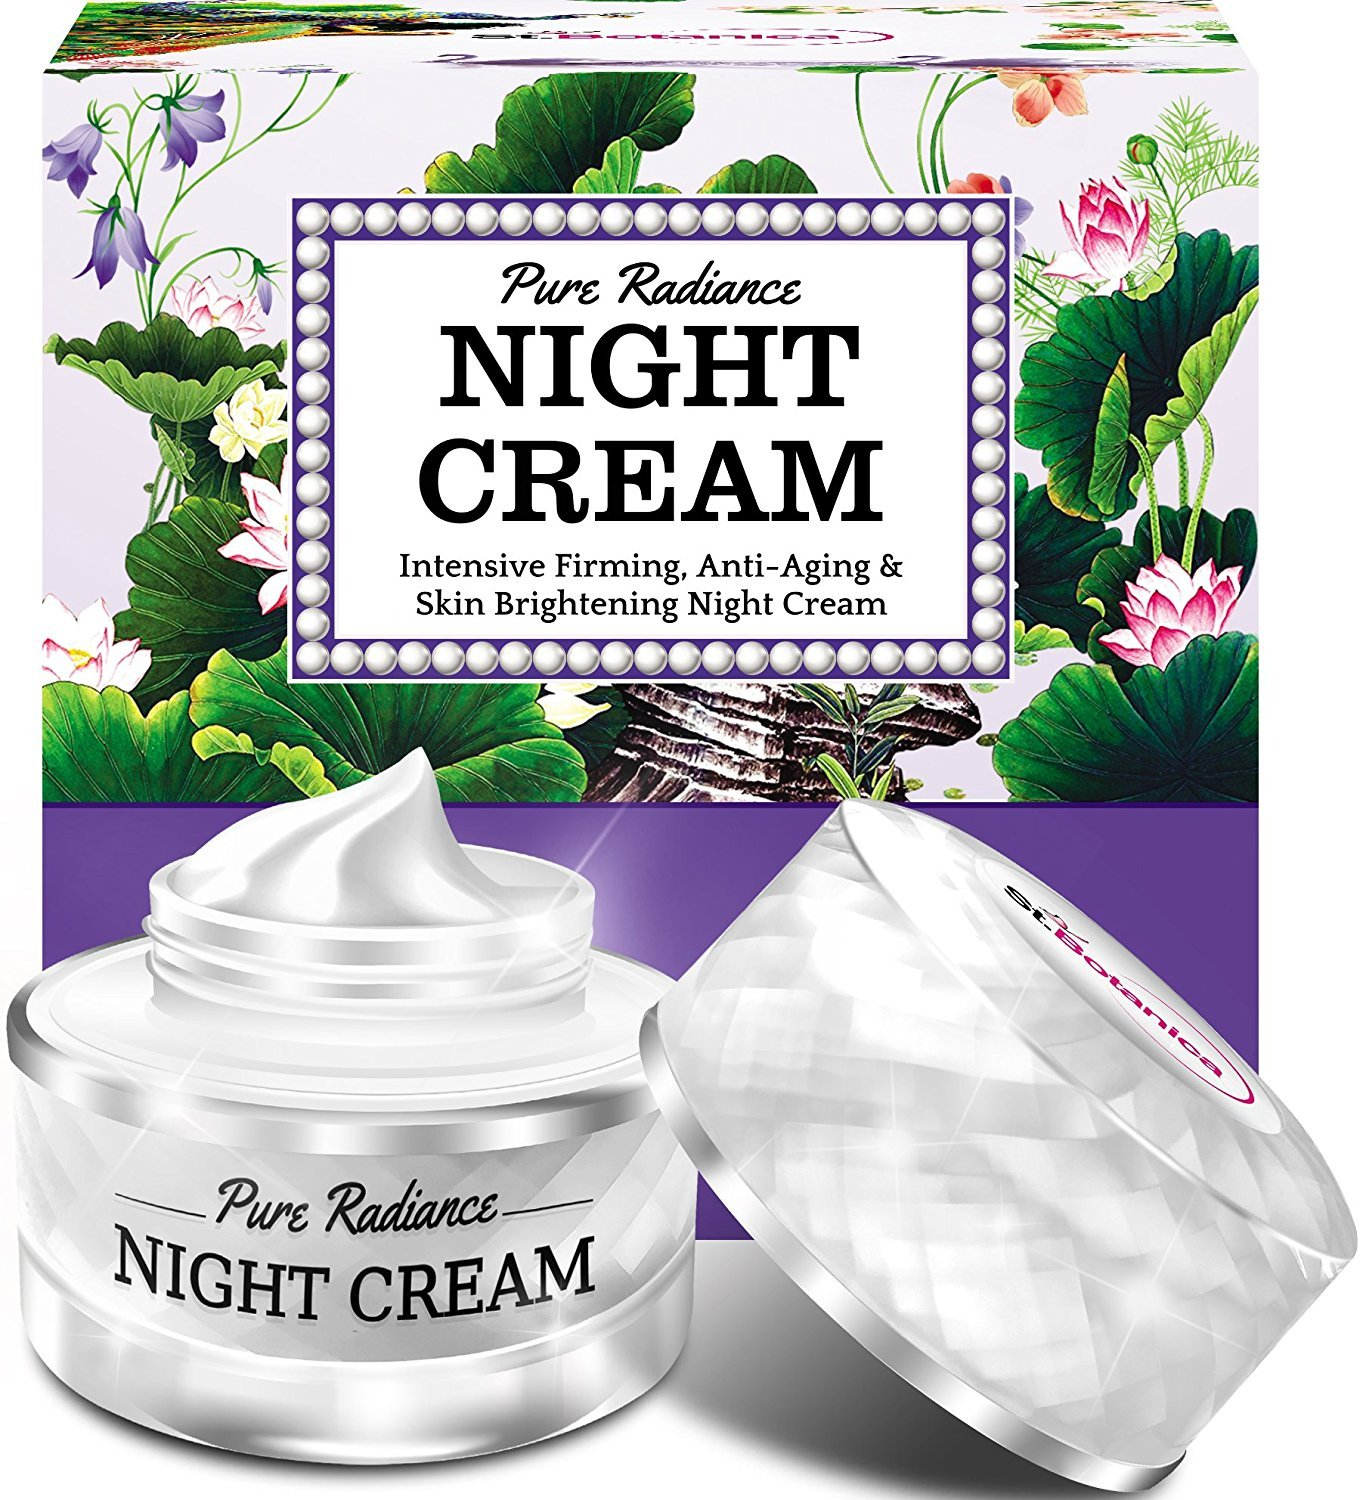 StBotanica Pure Radiance Night Cream - Intensive Firming,